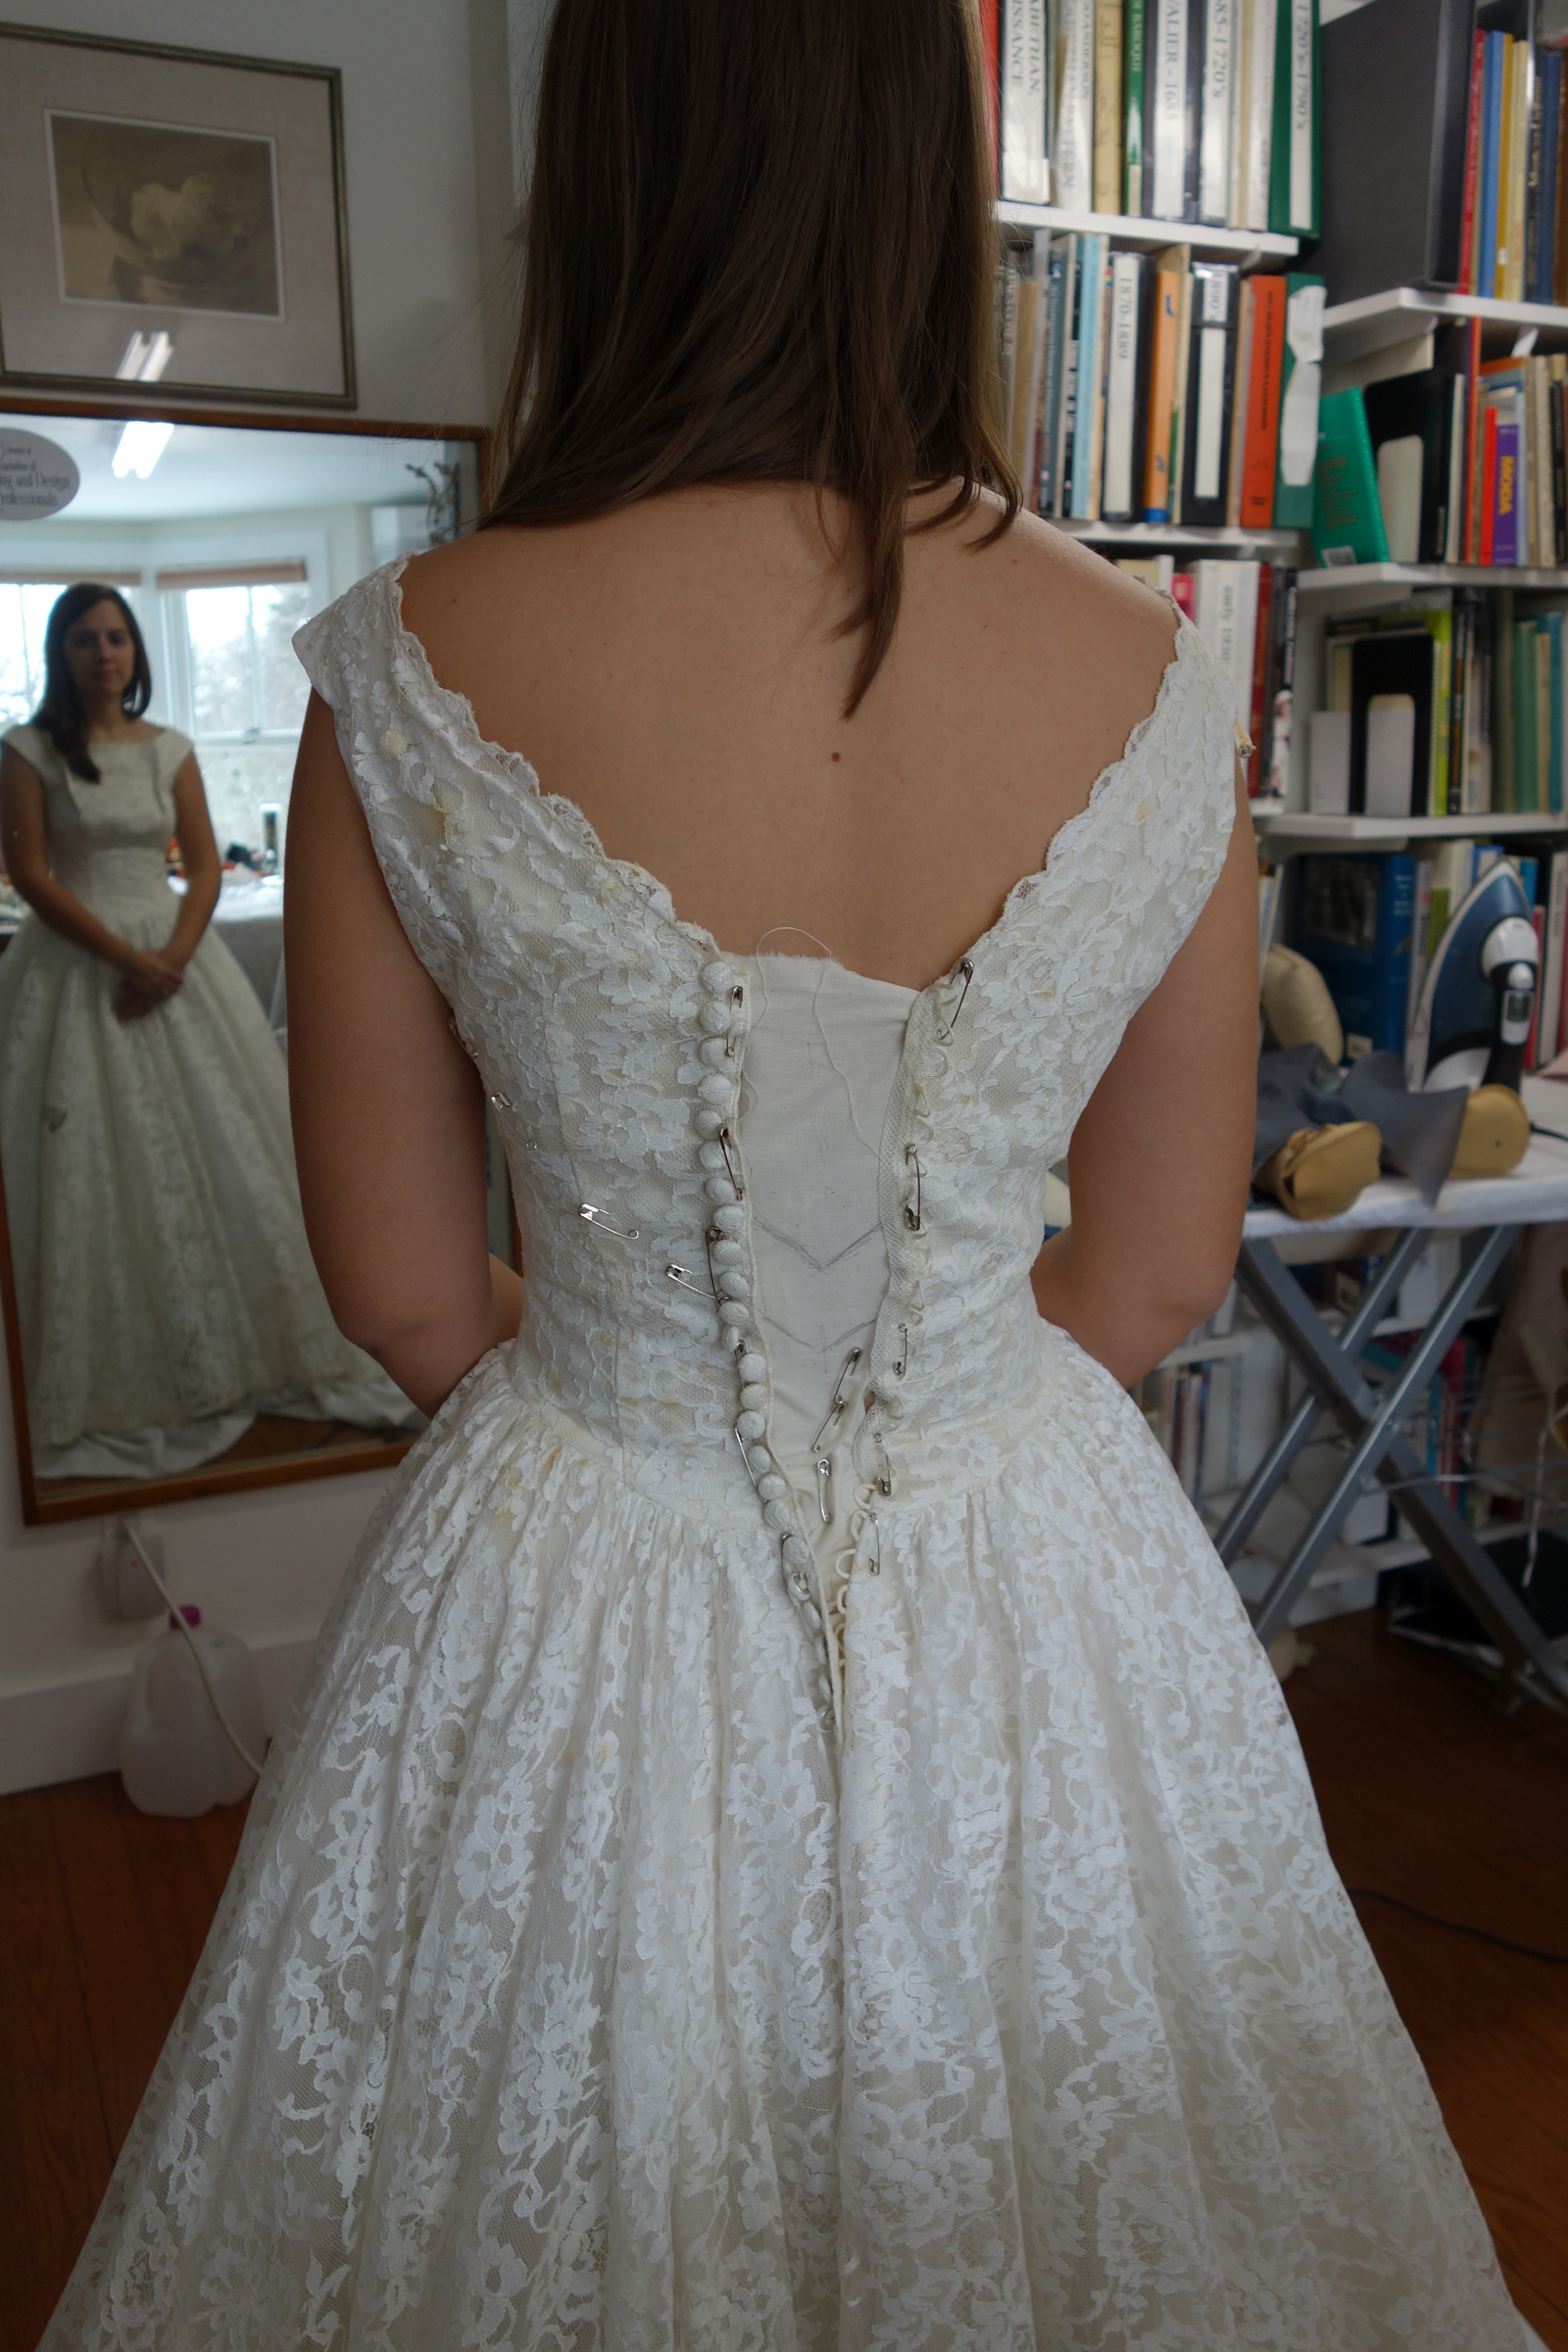 Gown to Convert to Strapless